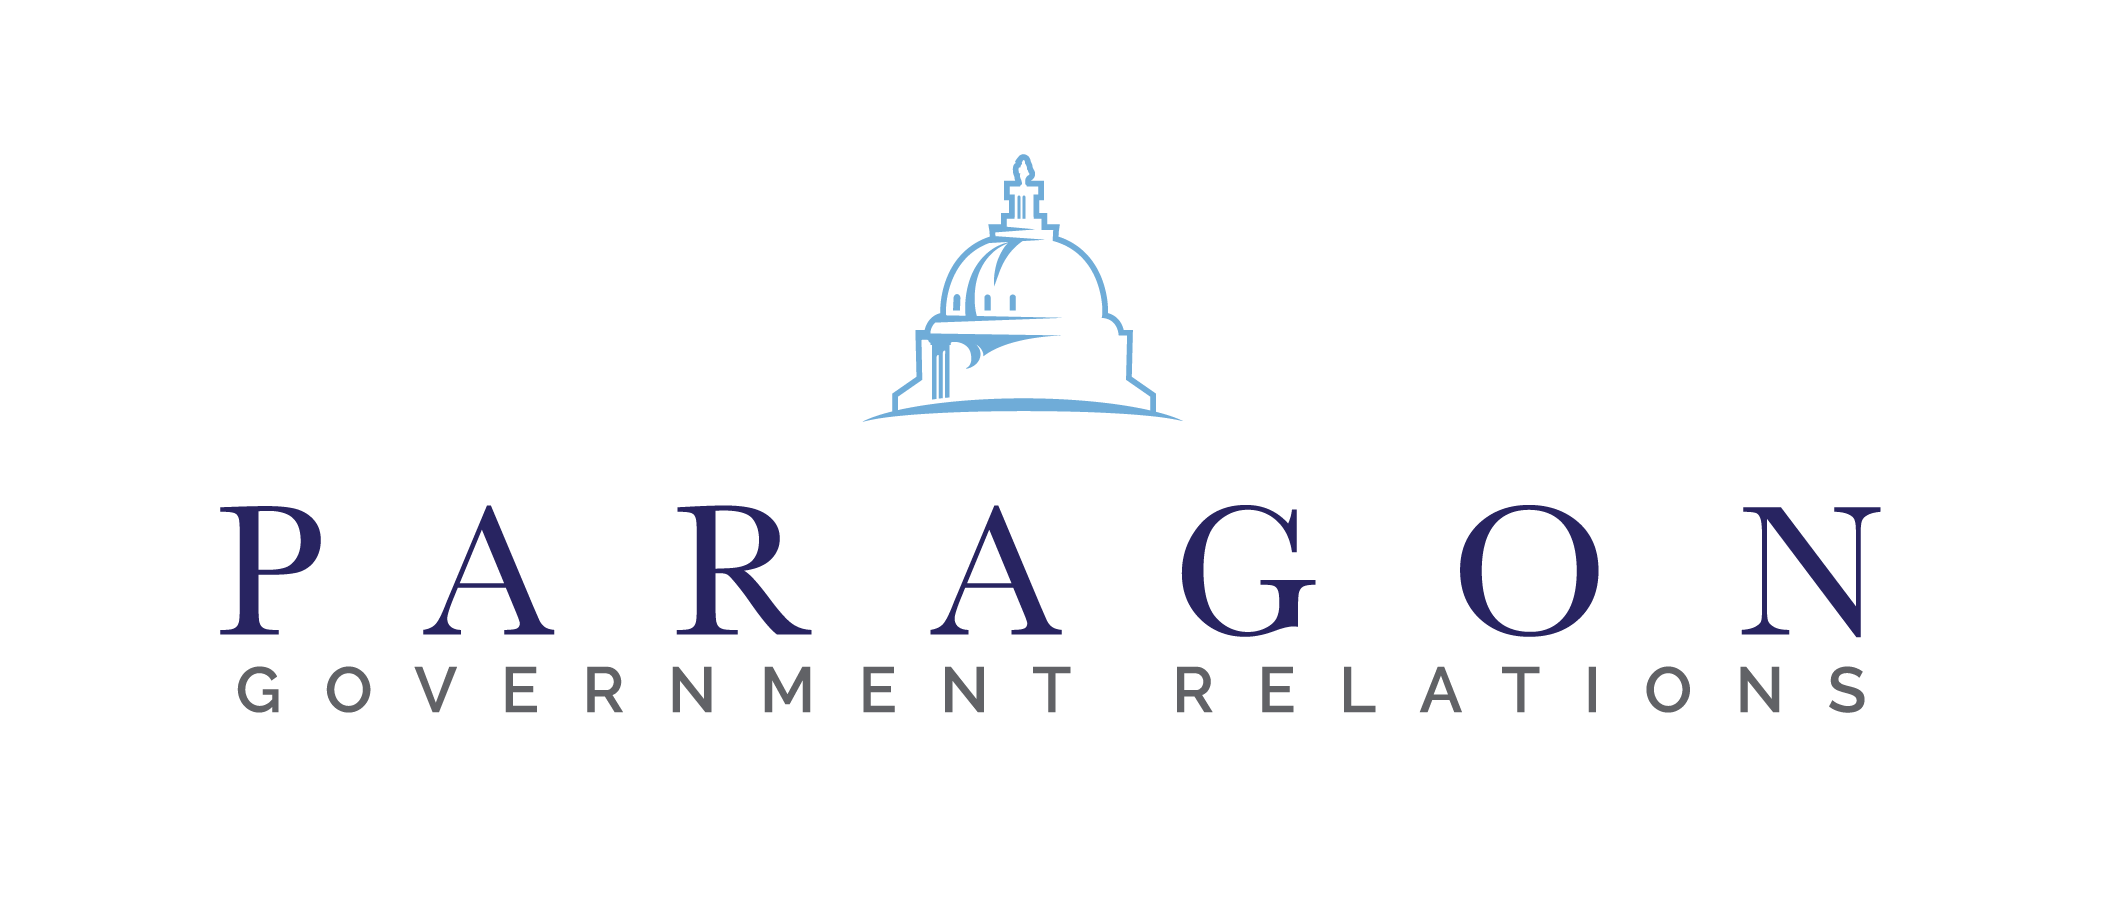 Paragon Government Relations